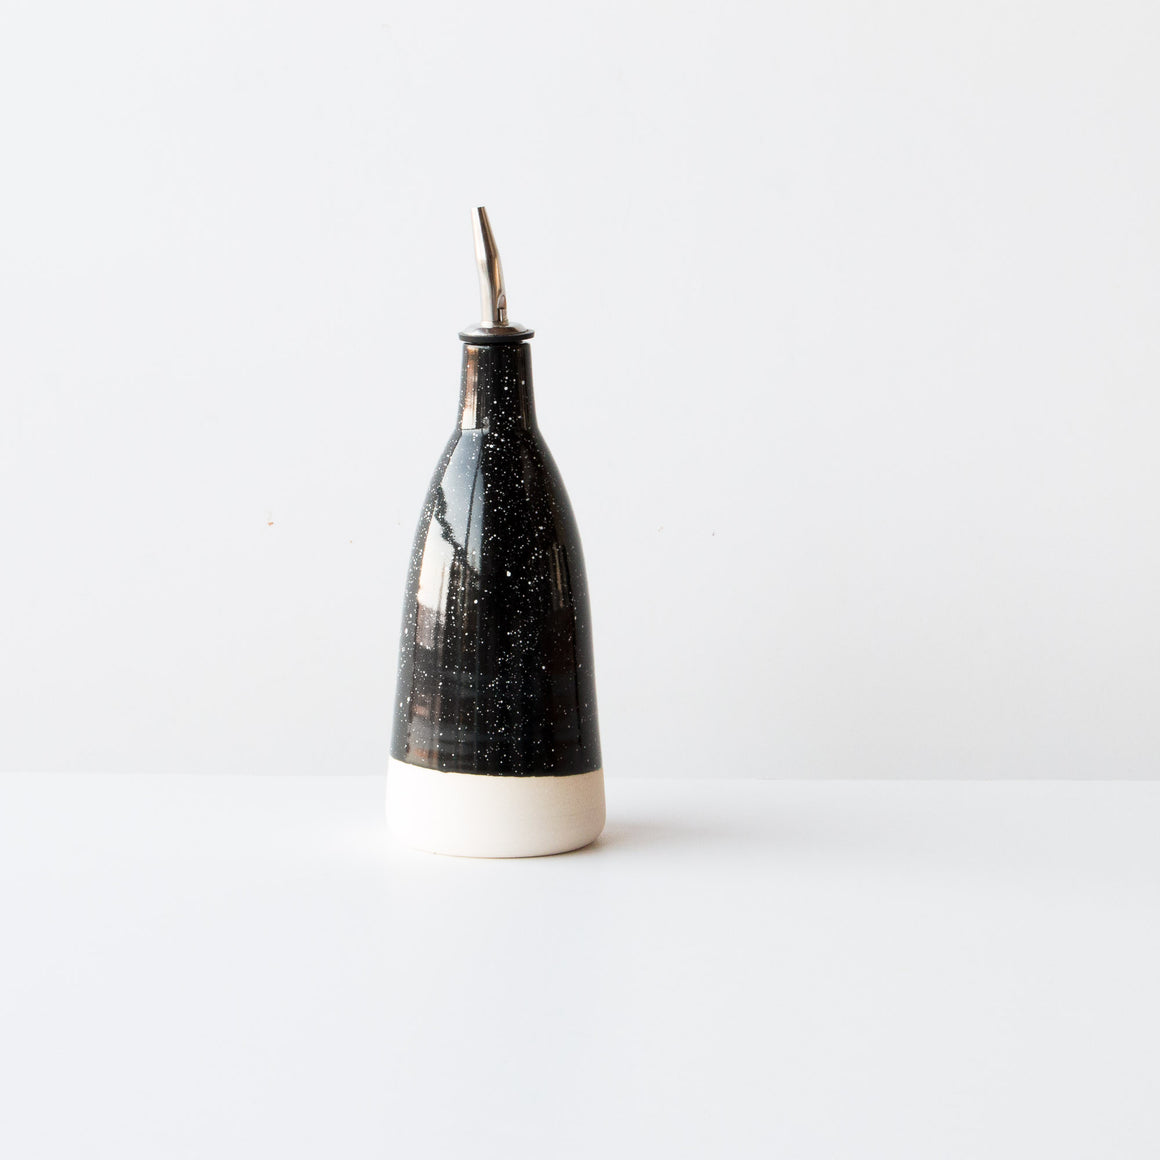 Handmade Black Ceramic Oil Dispenser With White Dots - Made in Canada